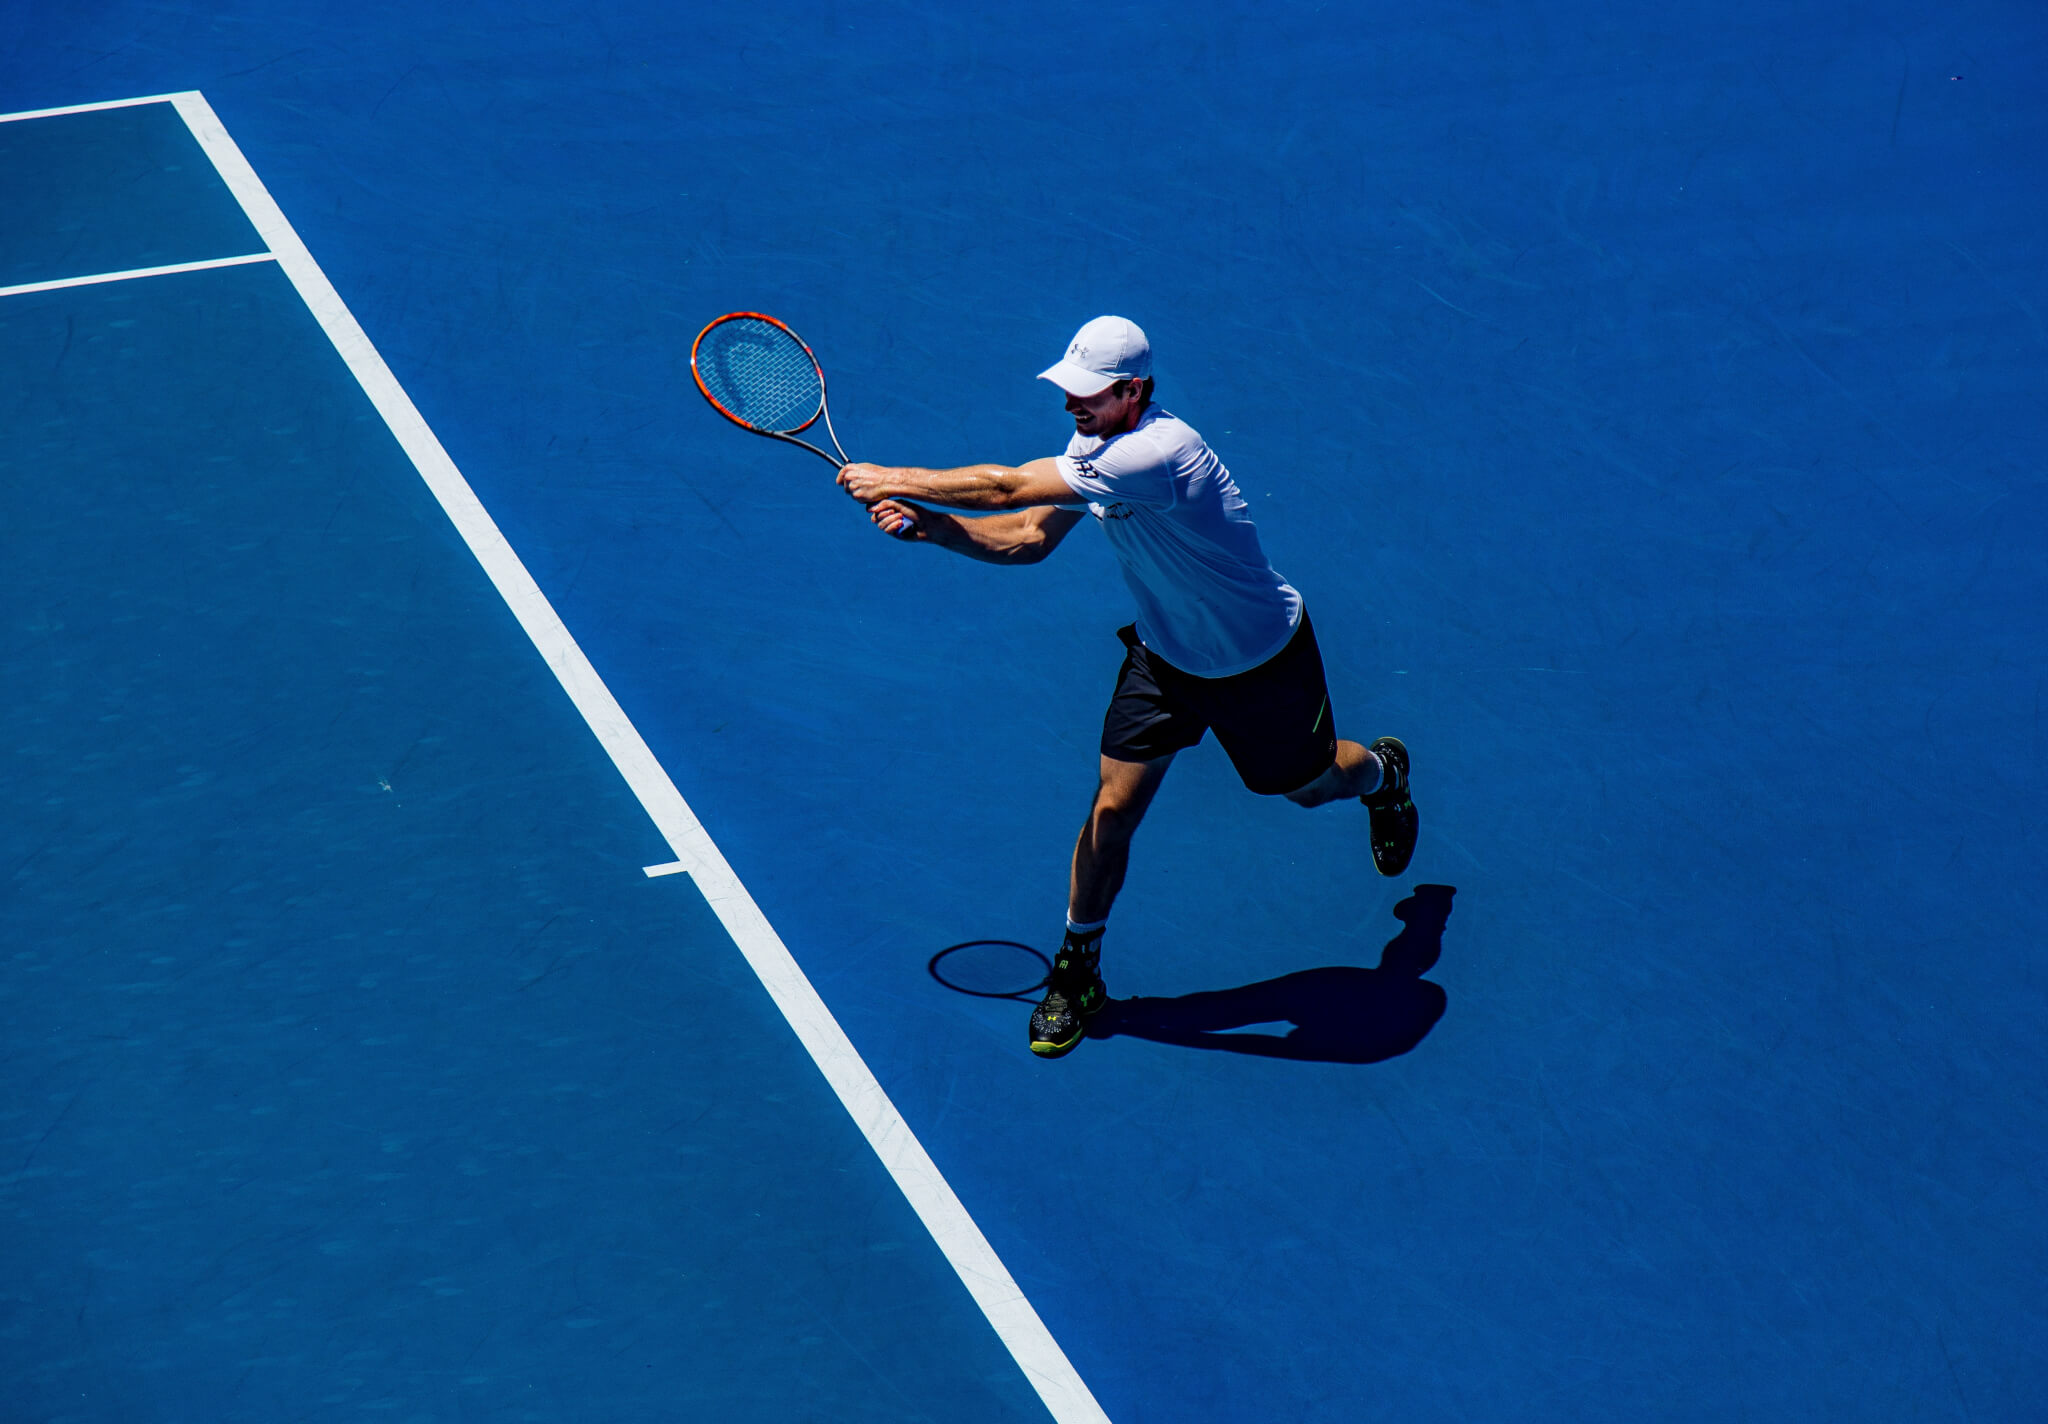 A picture of a man playing tennis on a blue court